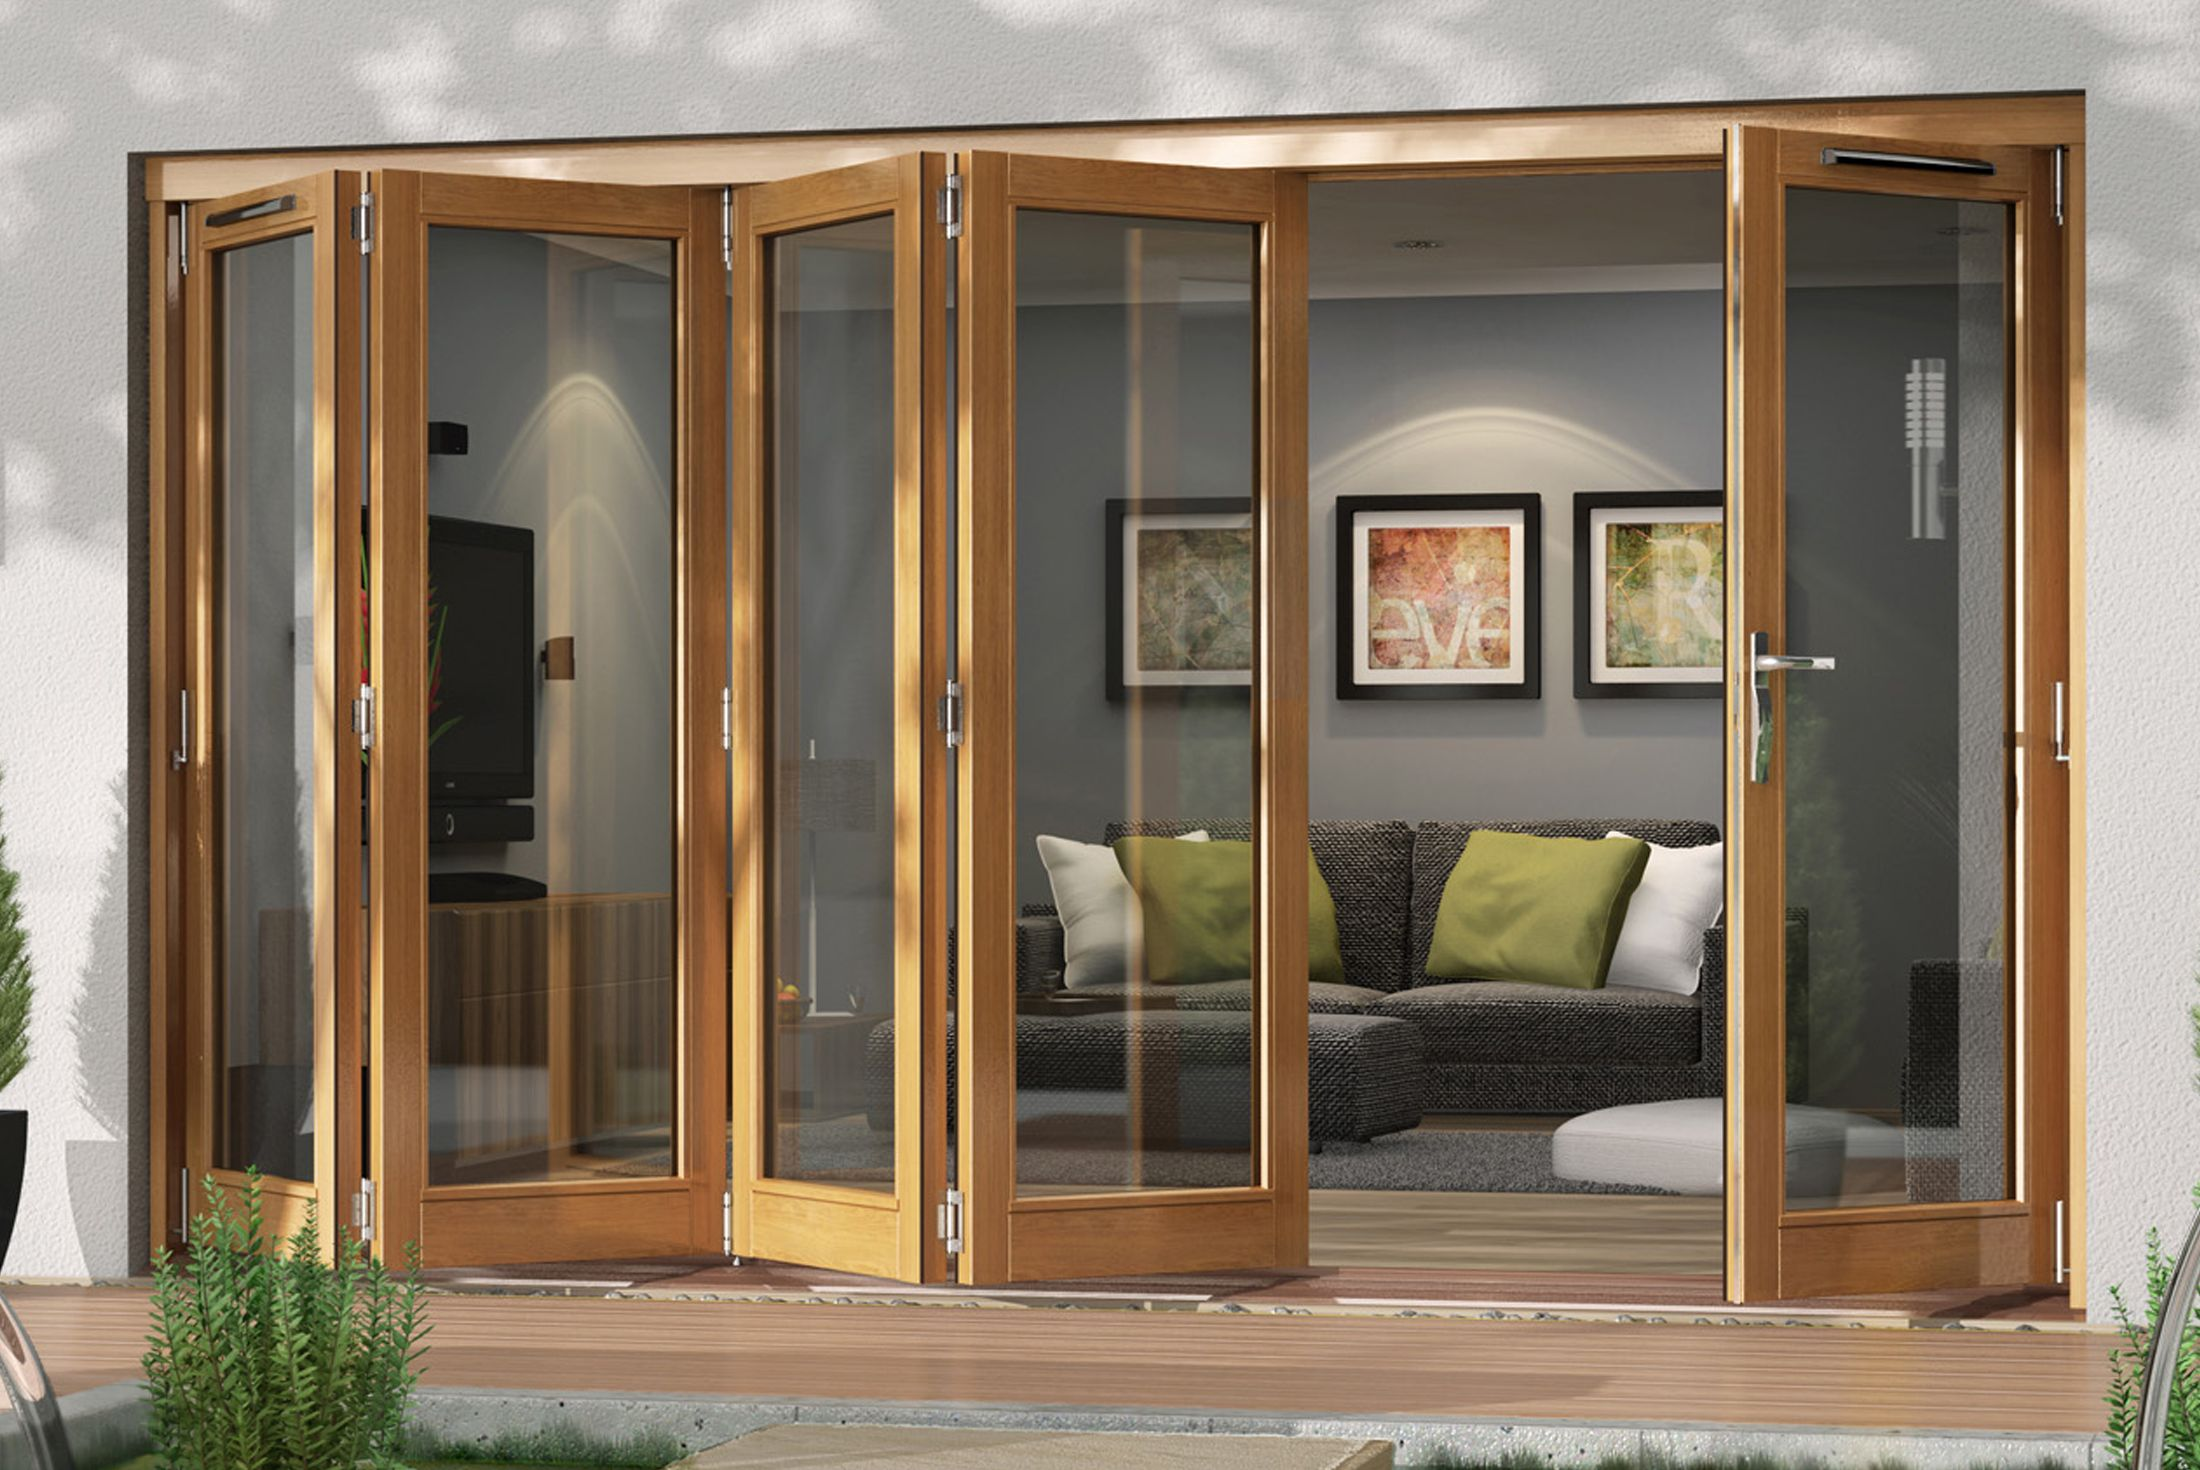 Outdoor Patio Doors Of Patio Doors Buying Guide Ideas Advice Diy At B Q